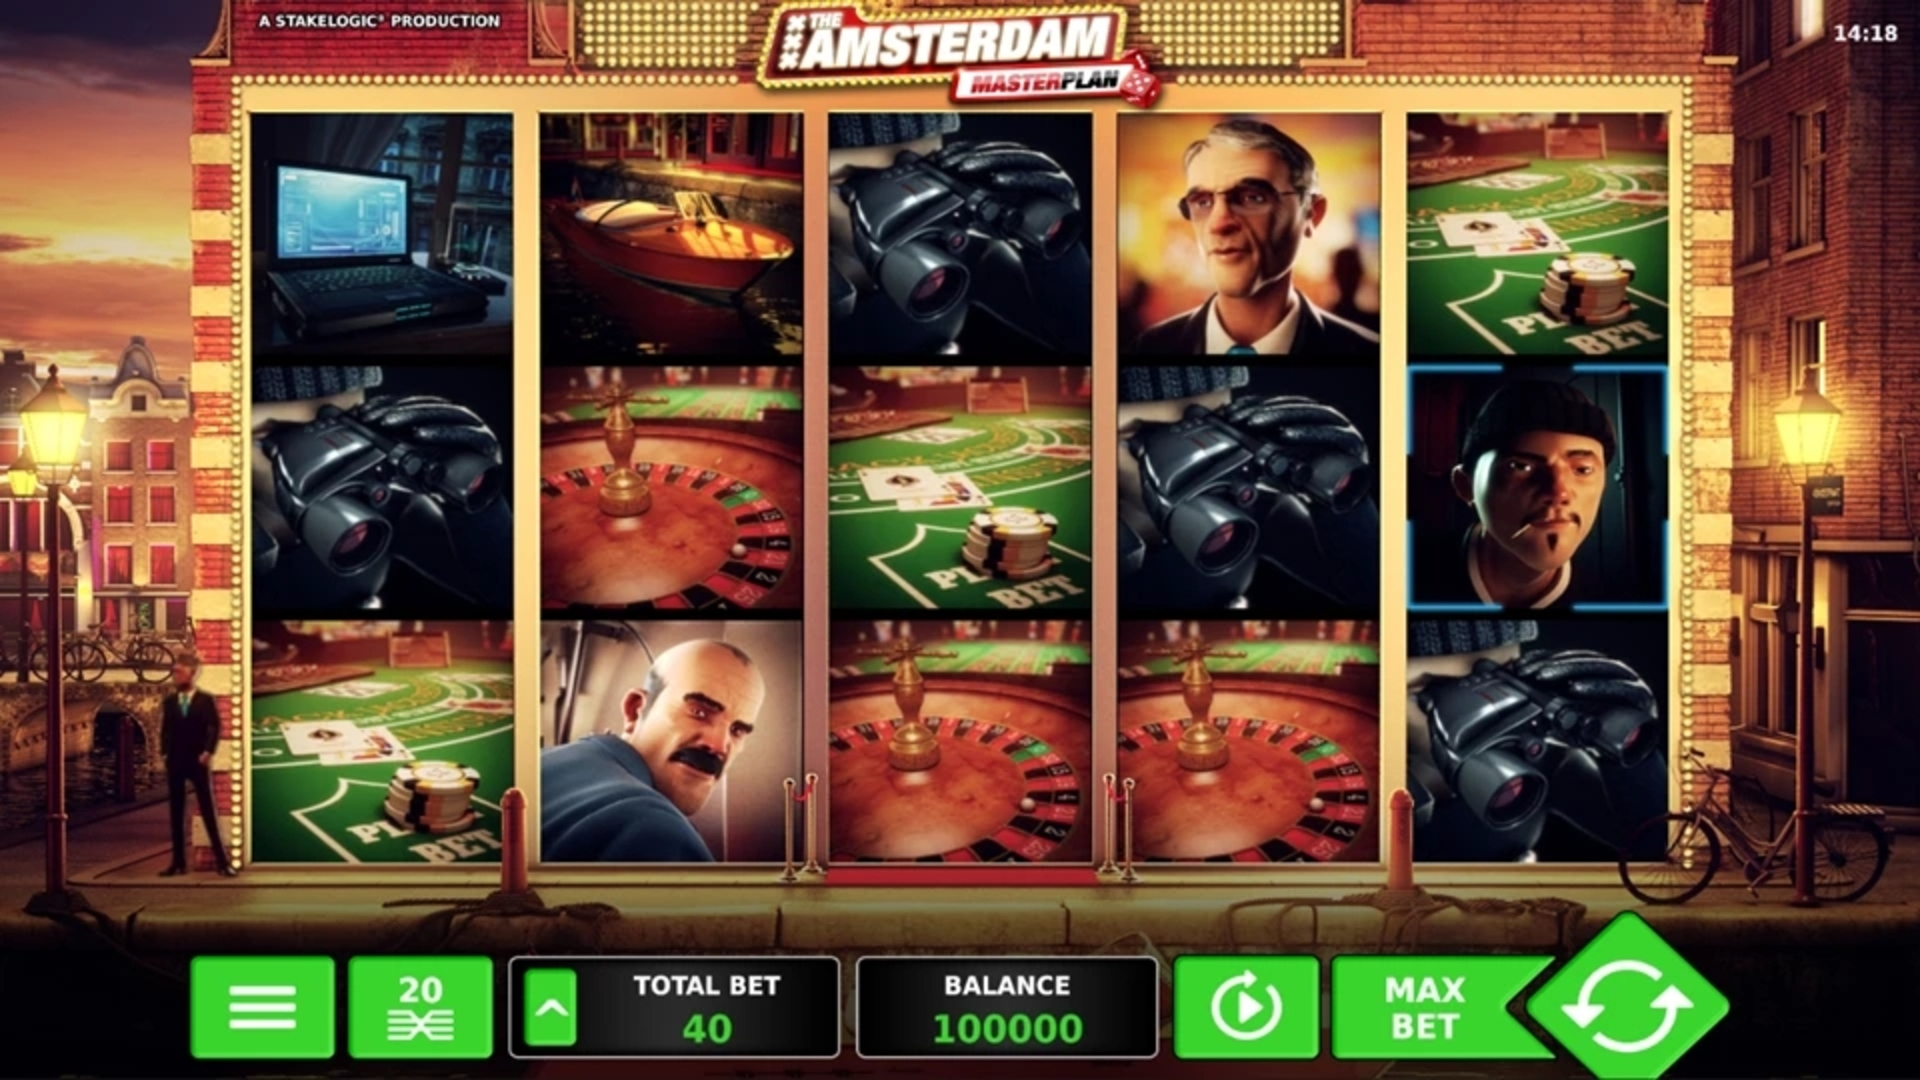 The Amsterdam Masterplan Online Slot Demo Game by Stakelogic